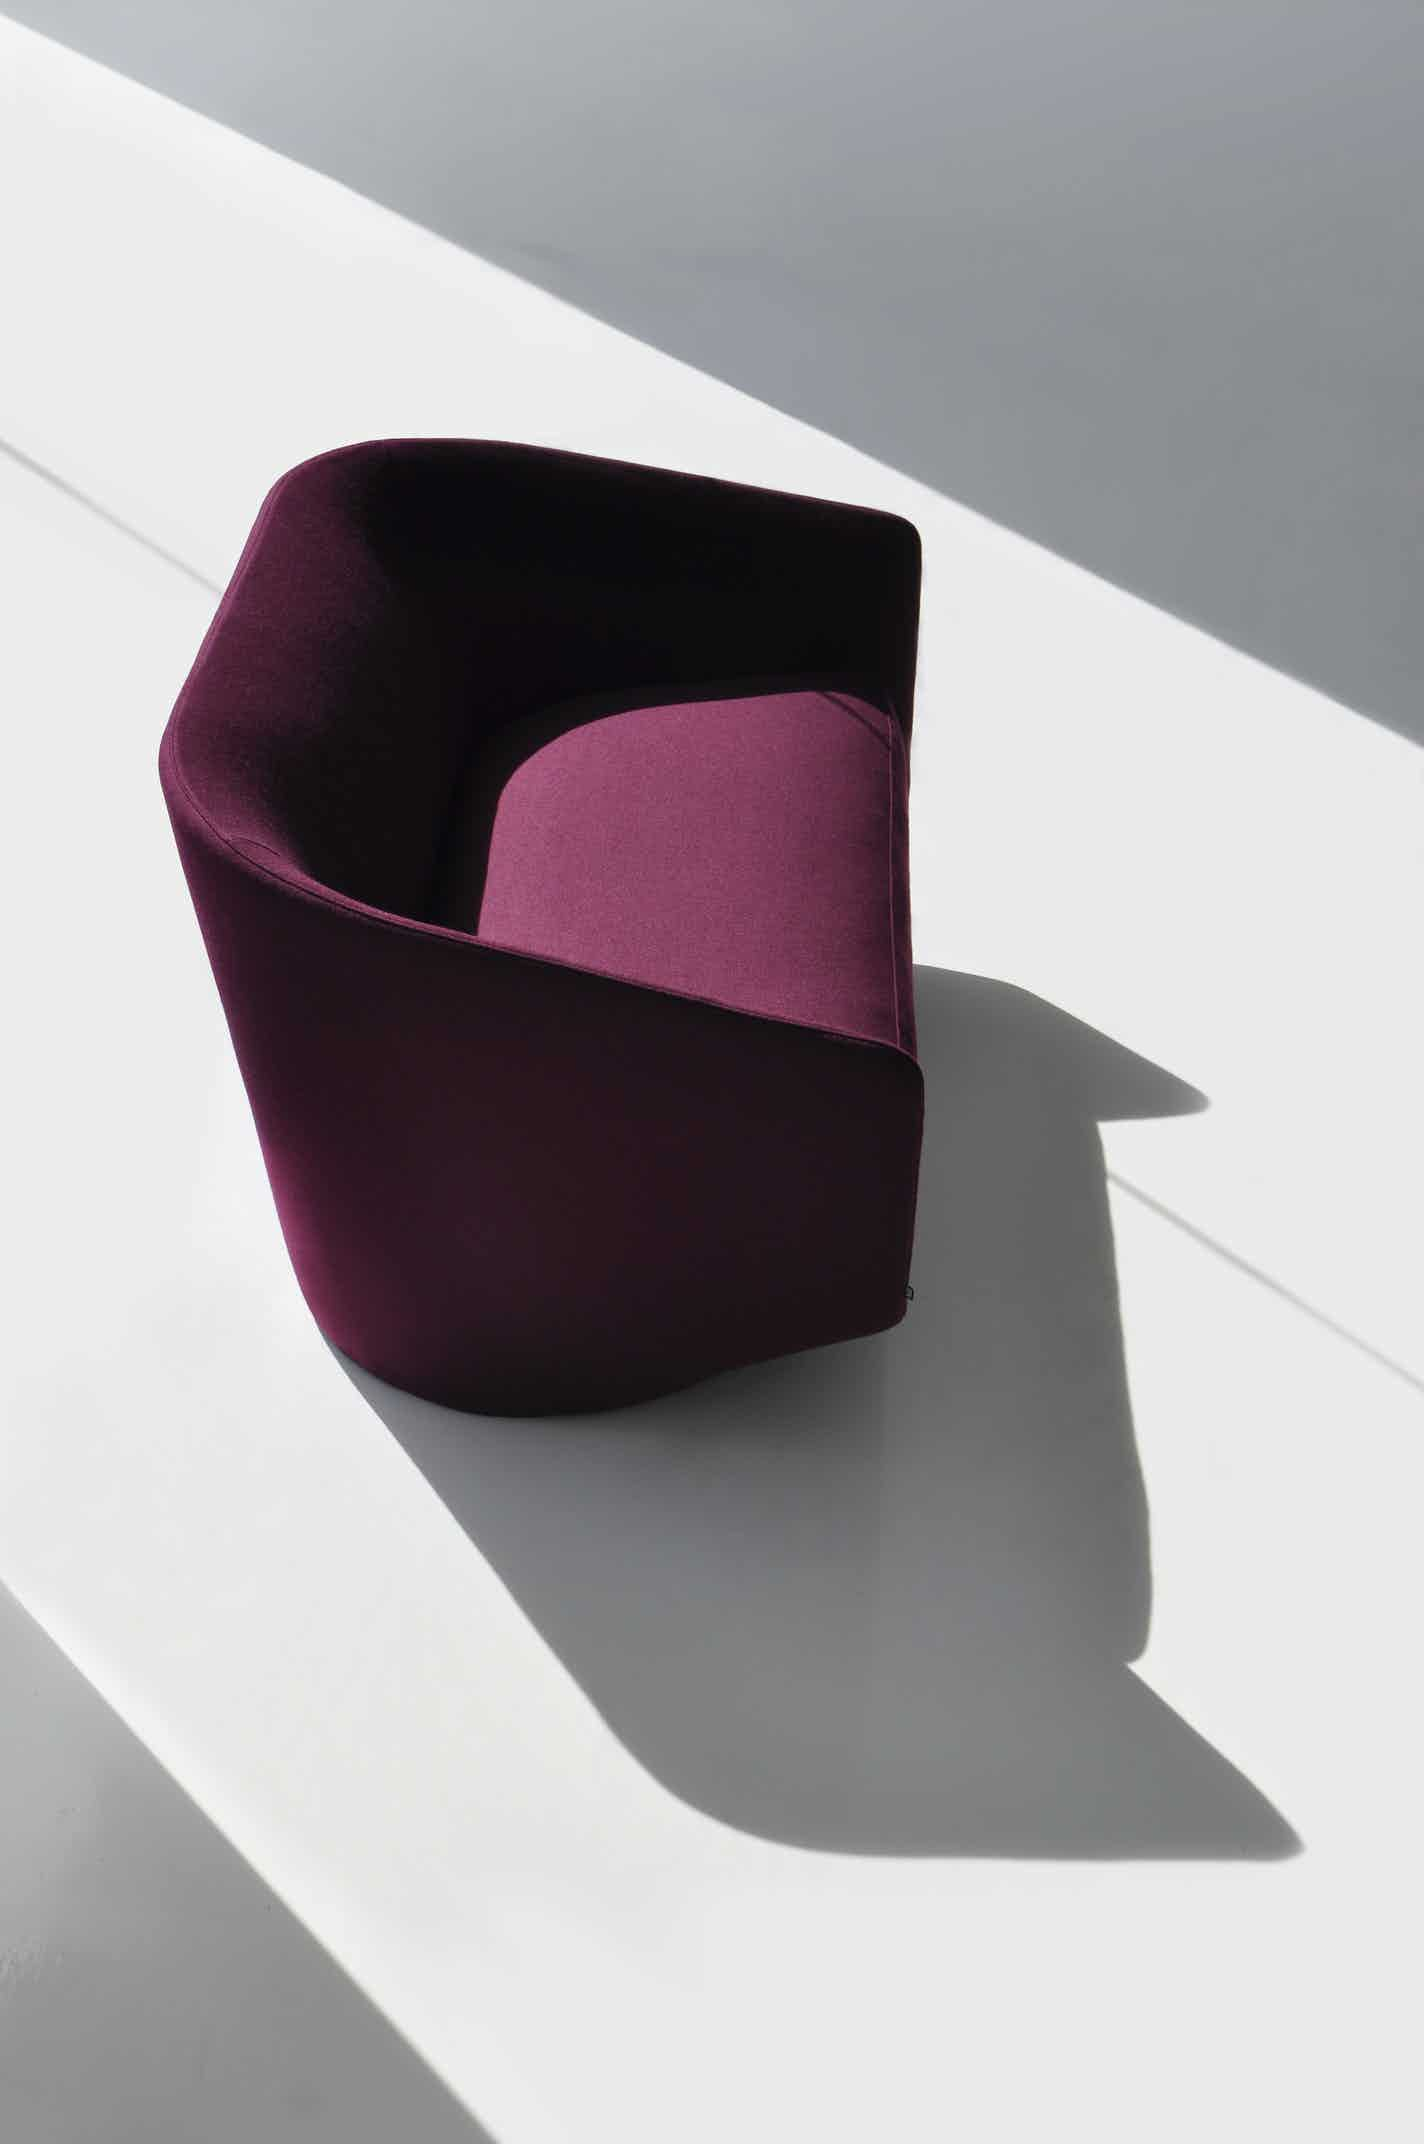 U sofa by bensen at haute living chicago